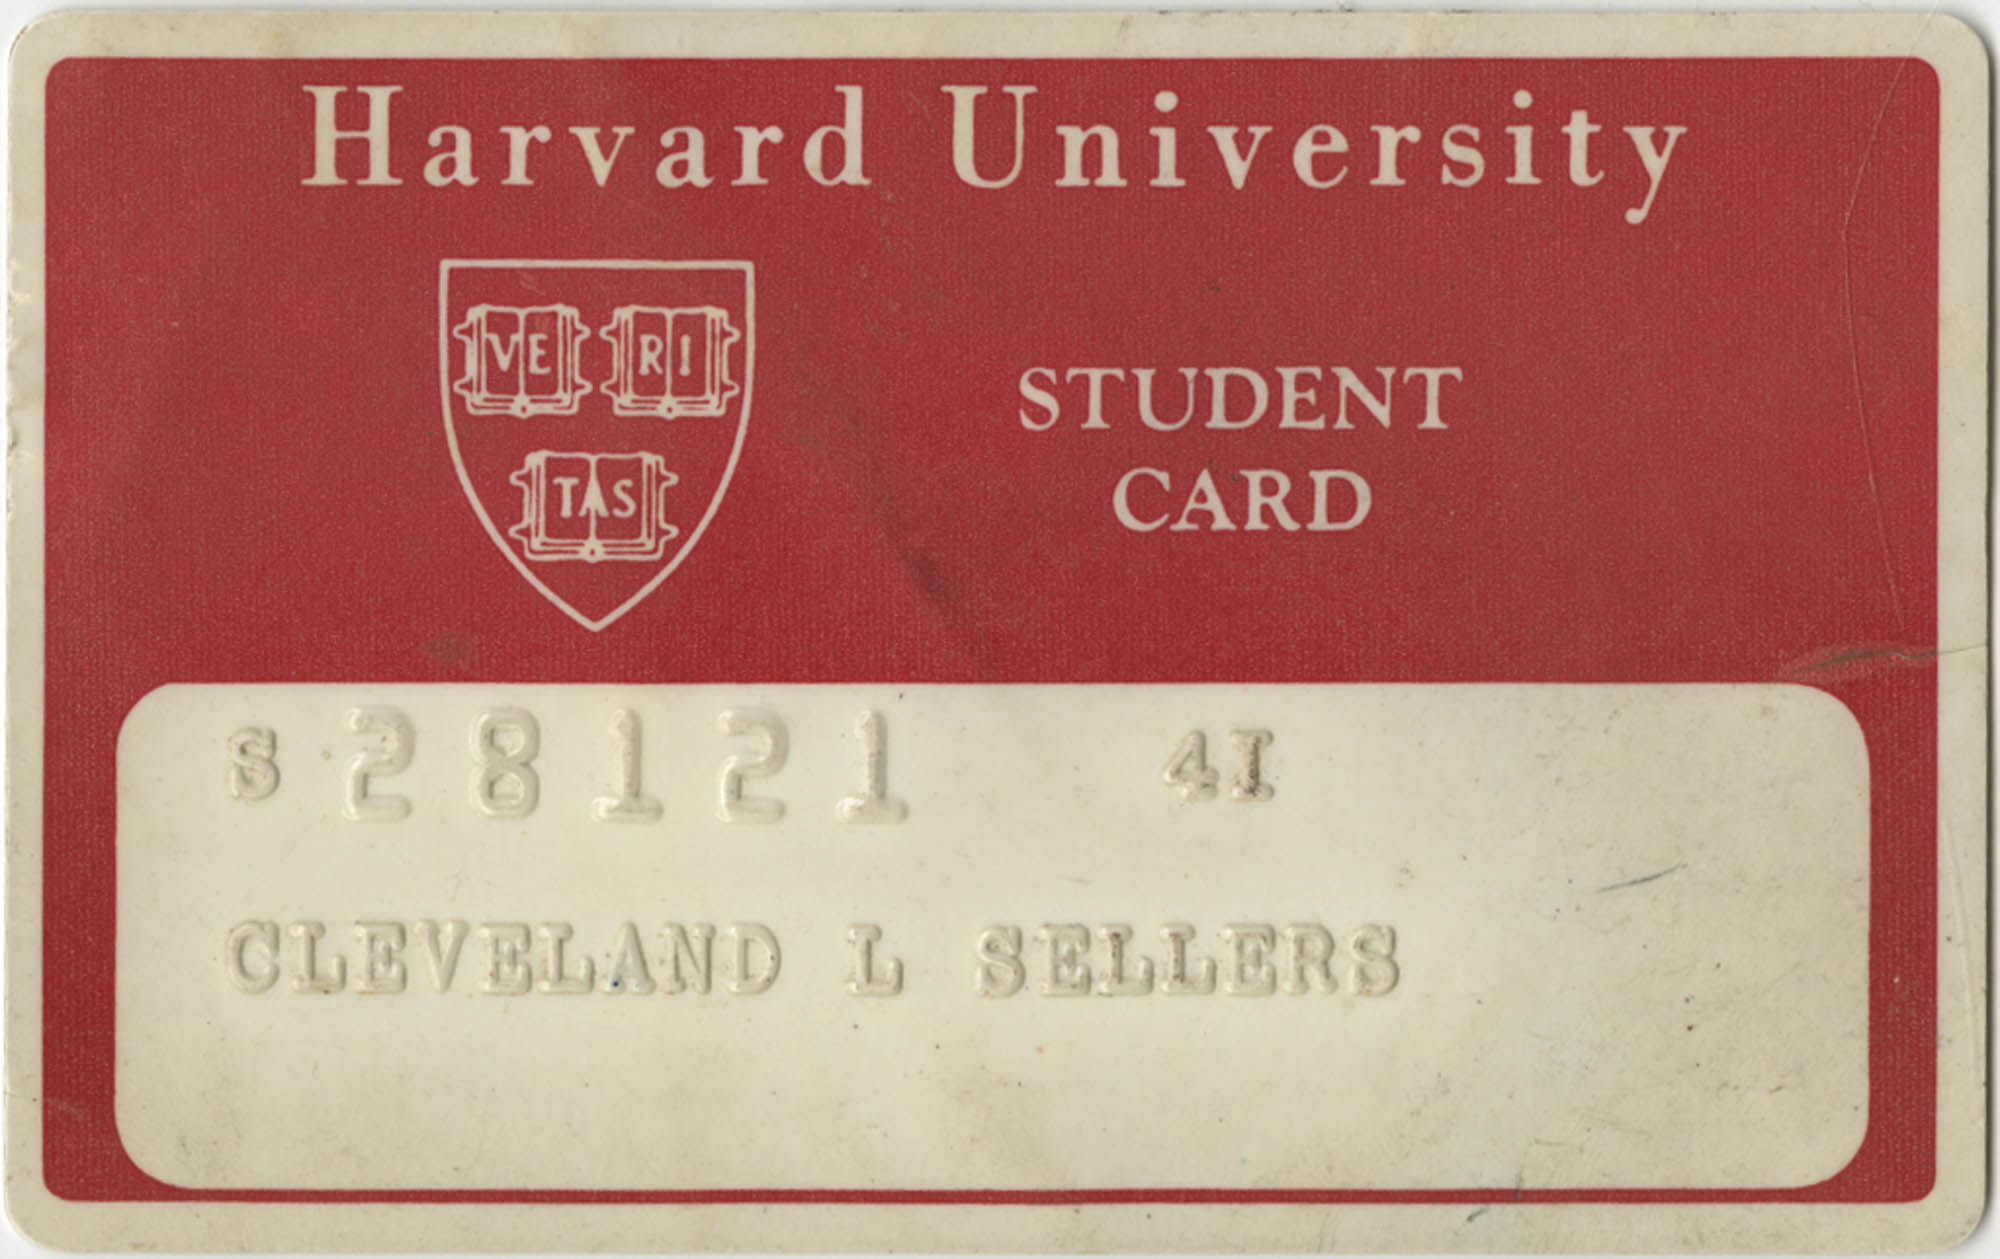 Cleveland Sellers Harvard University Student Card, 1969-70